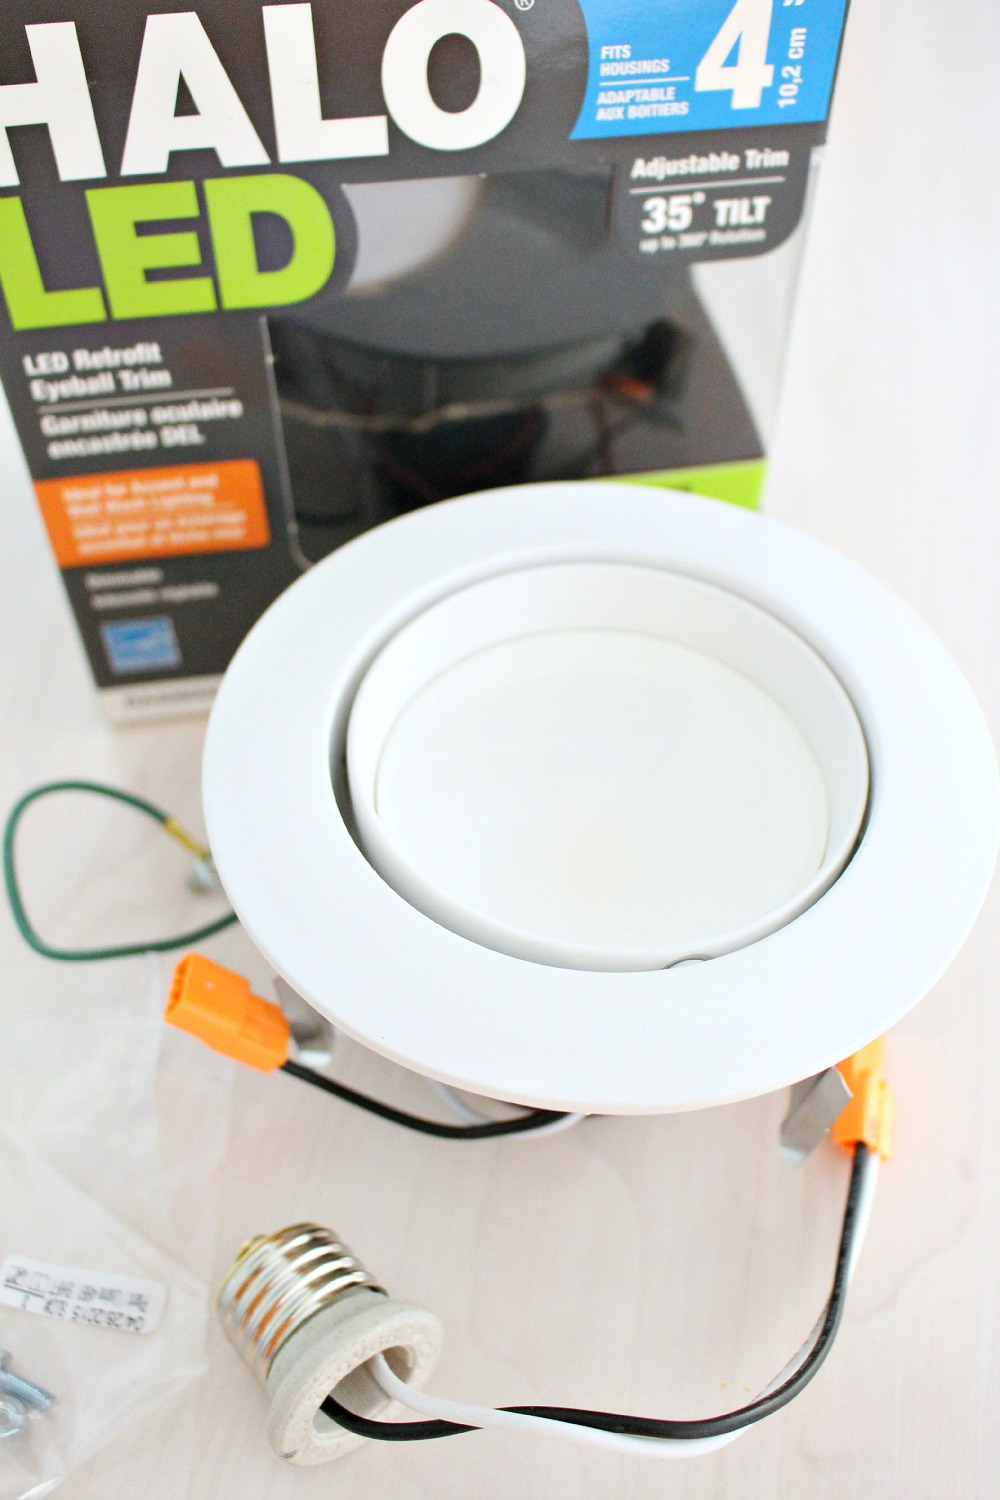 how to update pot lights without kitchen fluorescent light covers Halo LED Retrofit Pot Light Kit Review